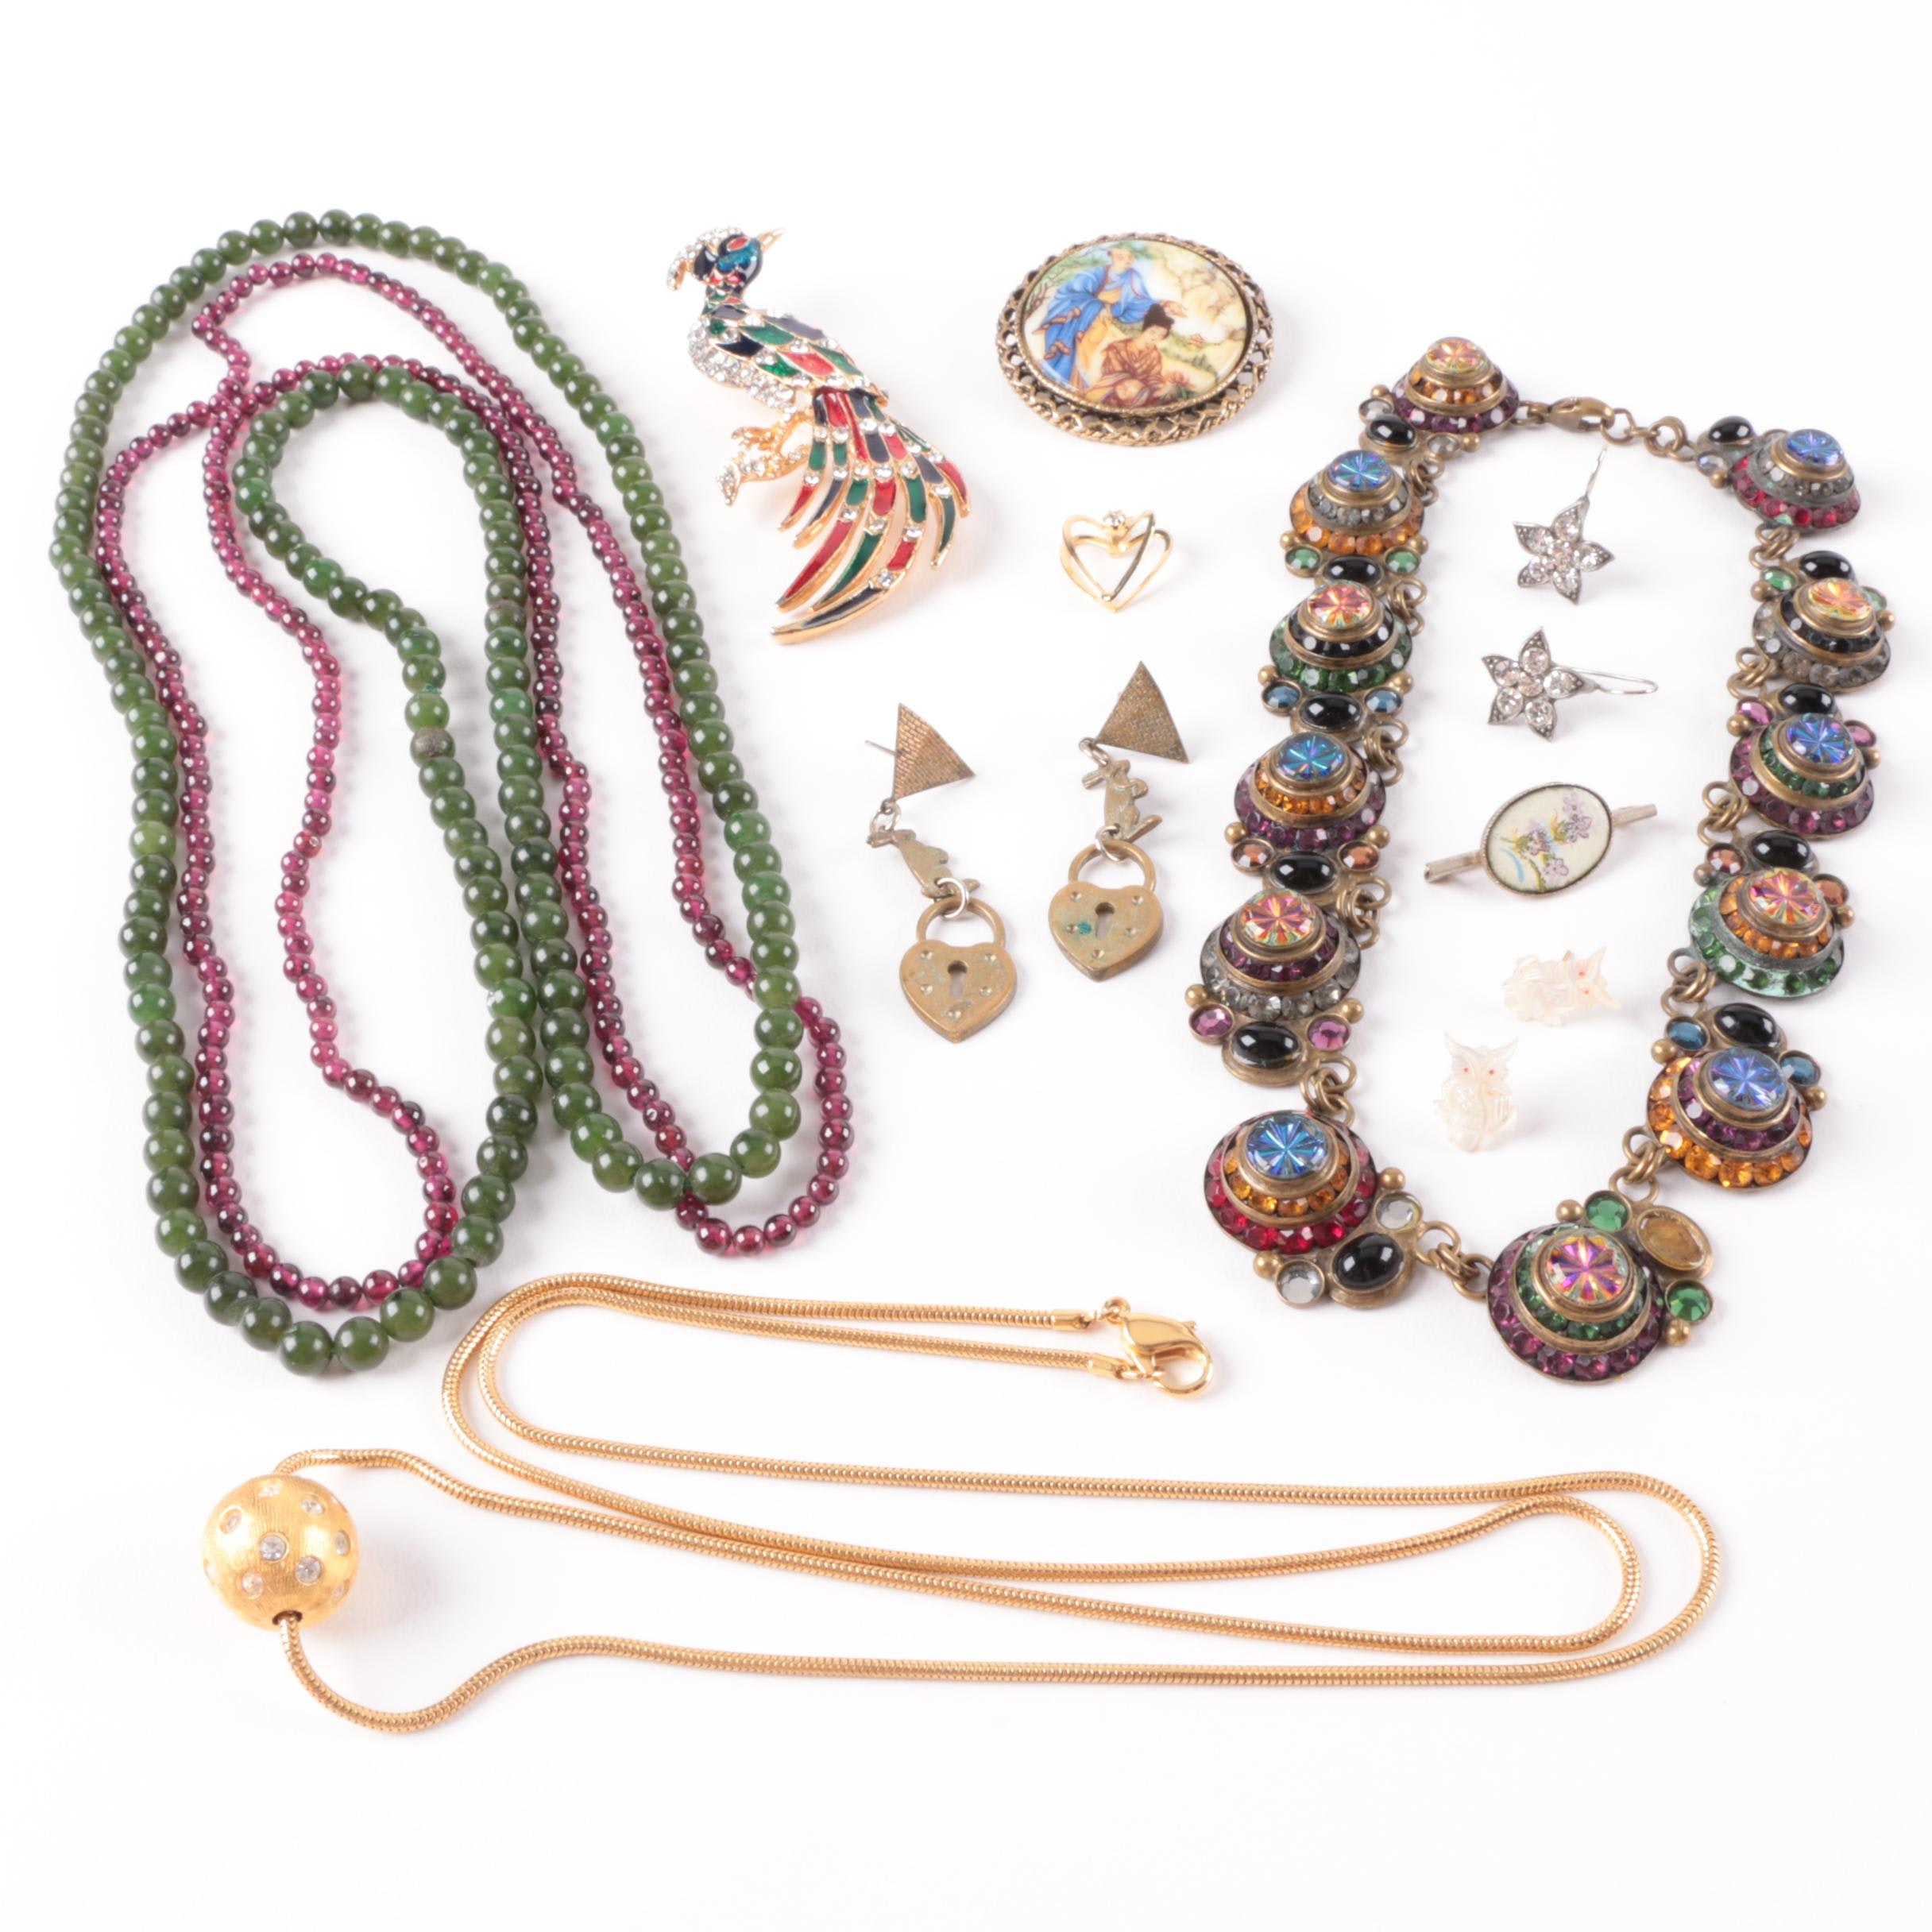 Costume and Gemstone Jewelry Including a Sorrelli Necklaces